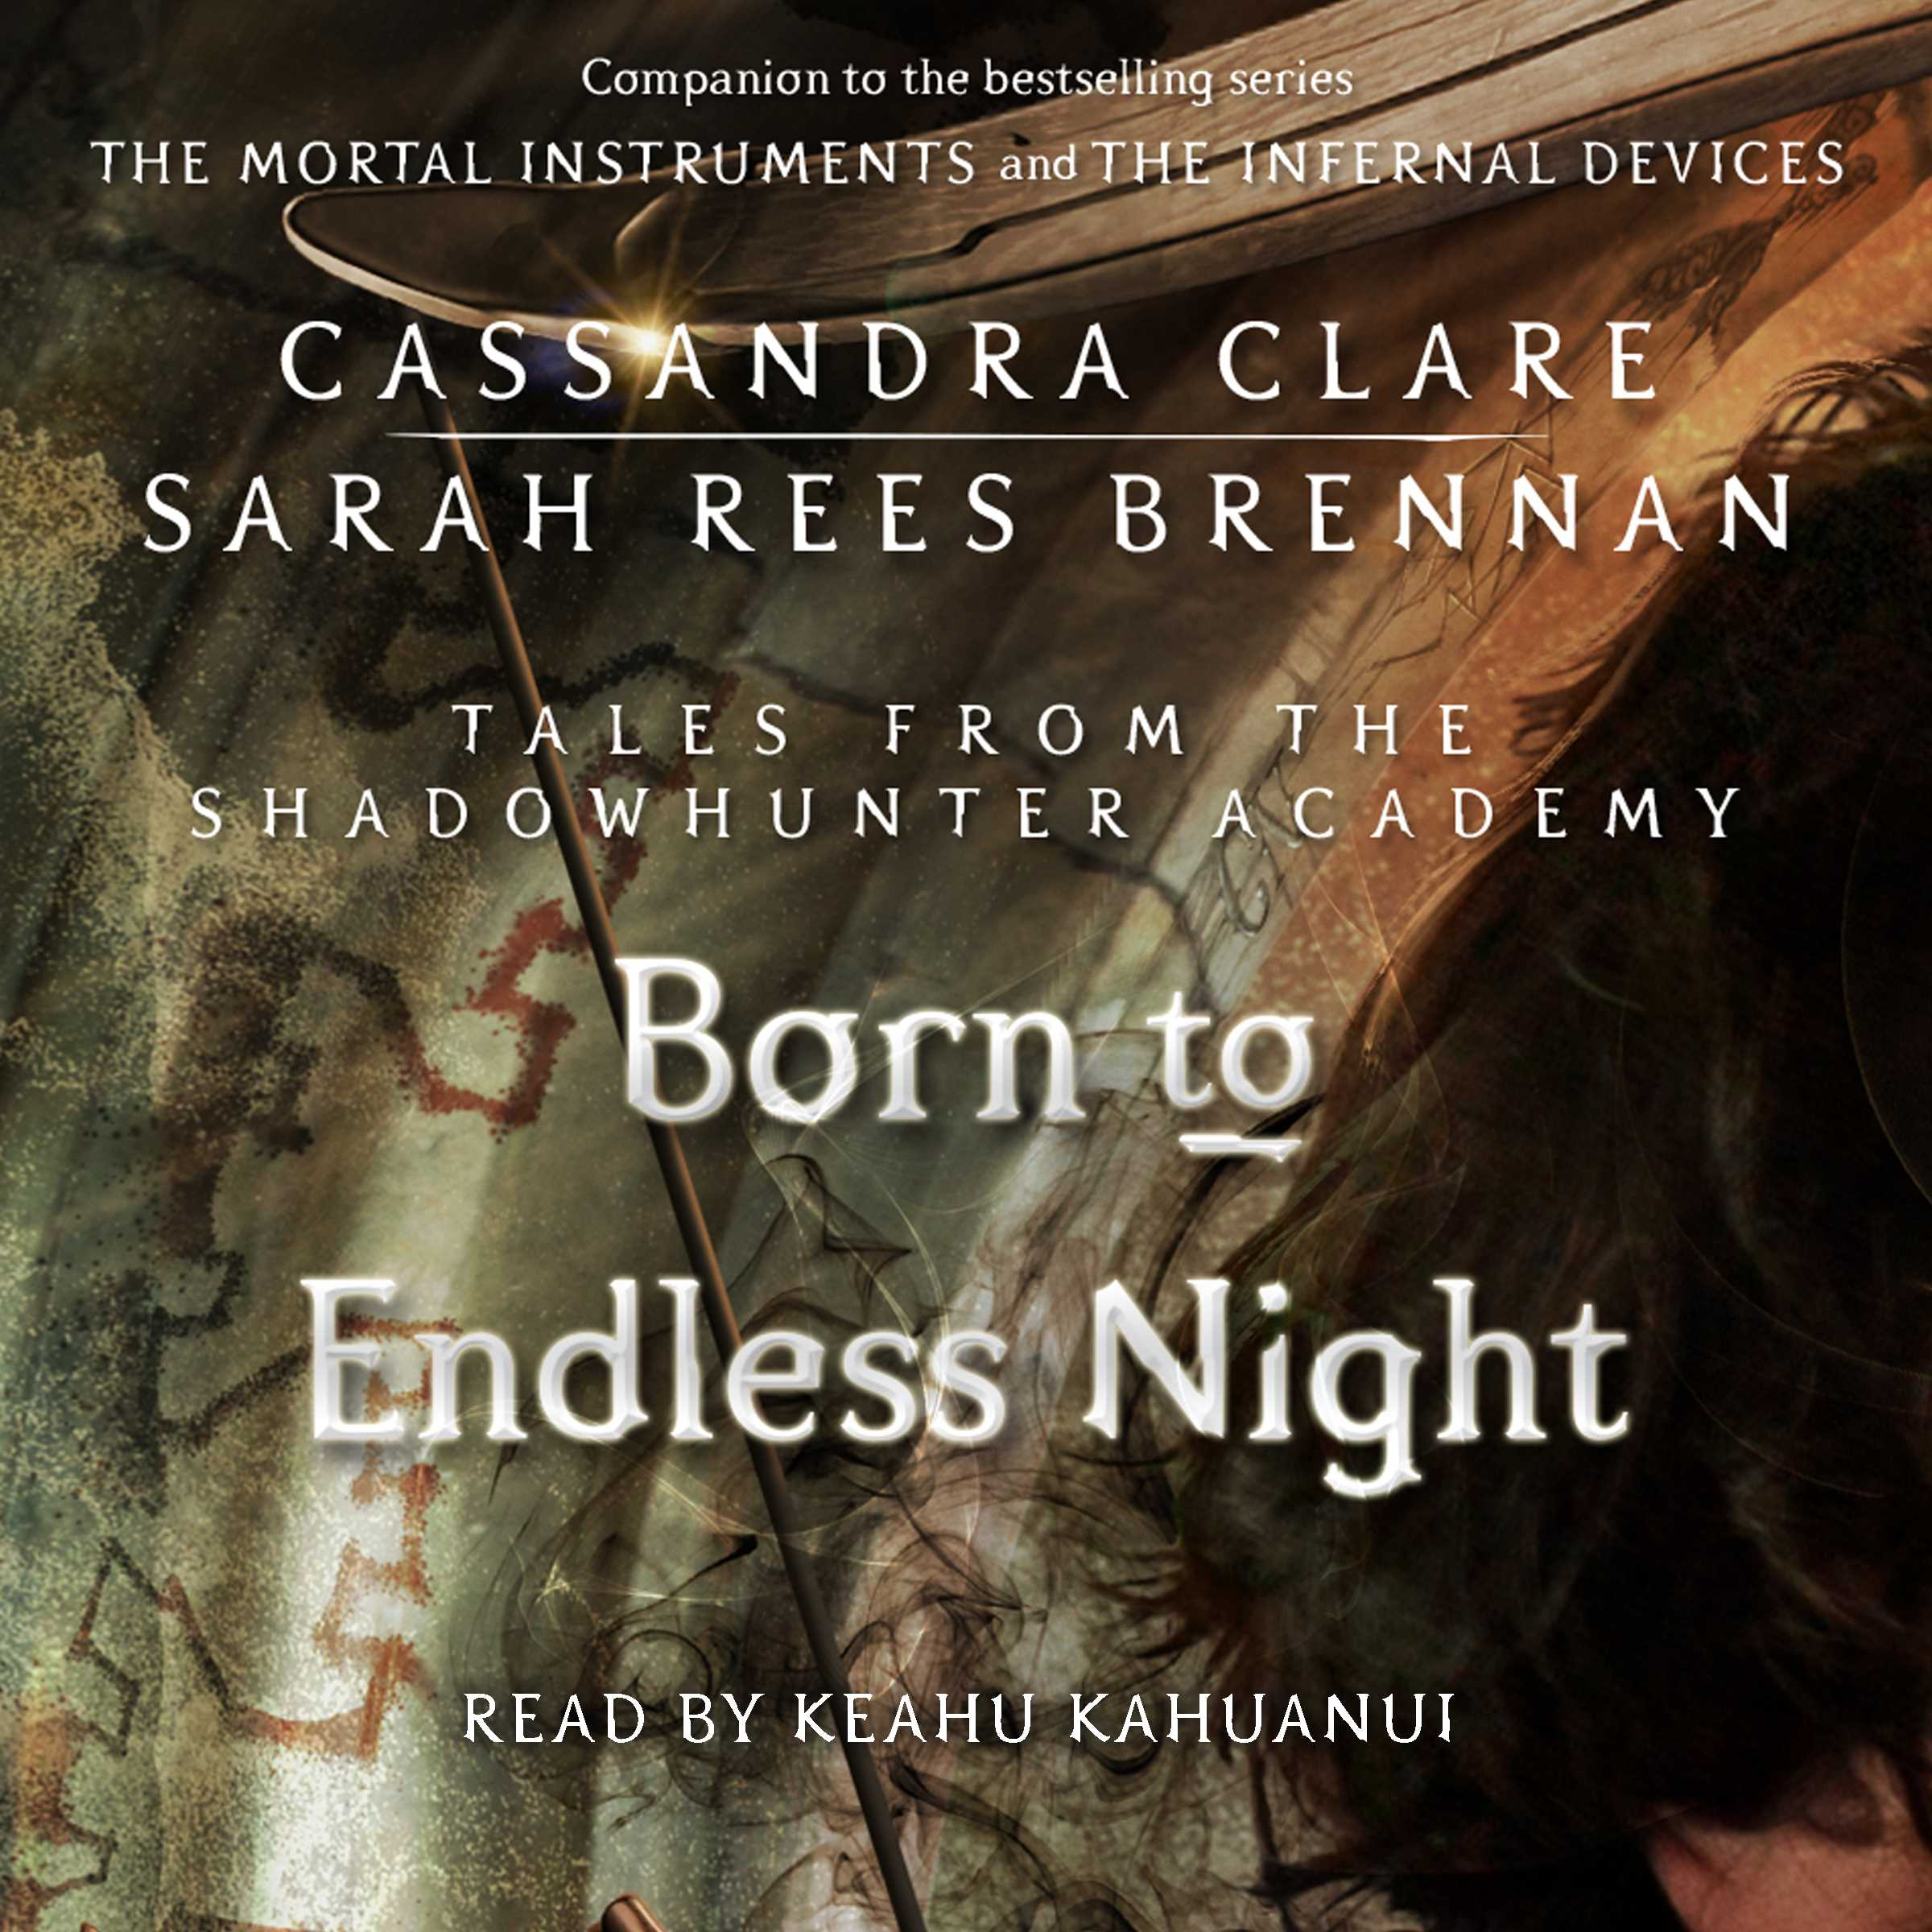 Born to endless night 9781442384170 hr